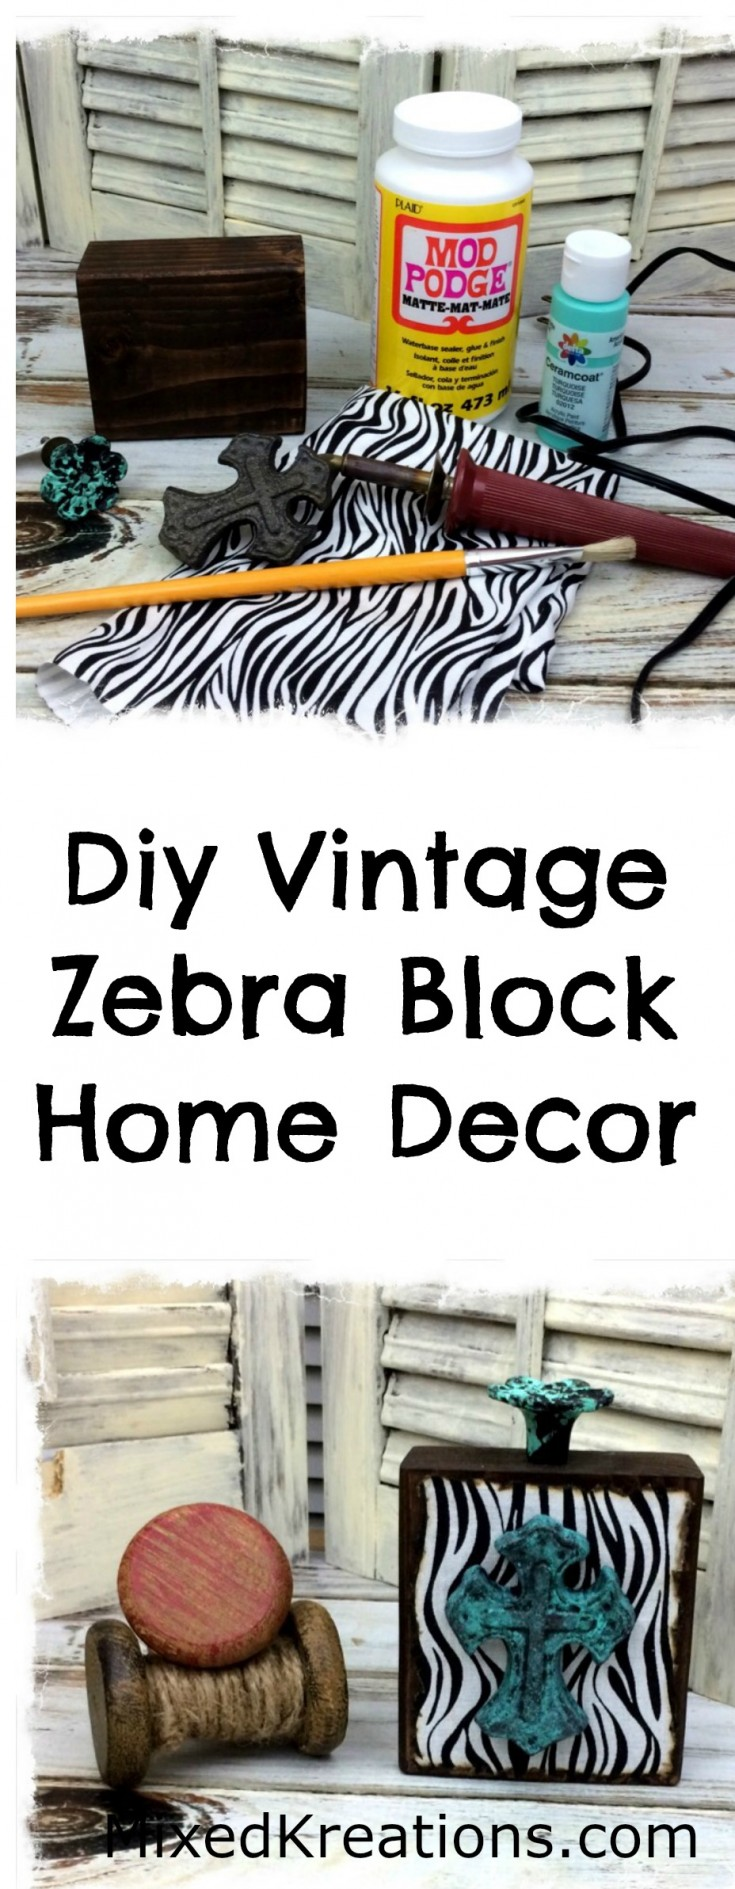 diy vintage zebra print block home decor